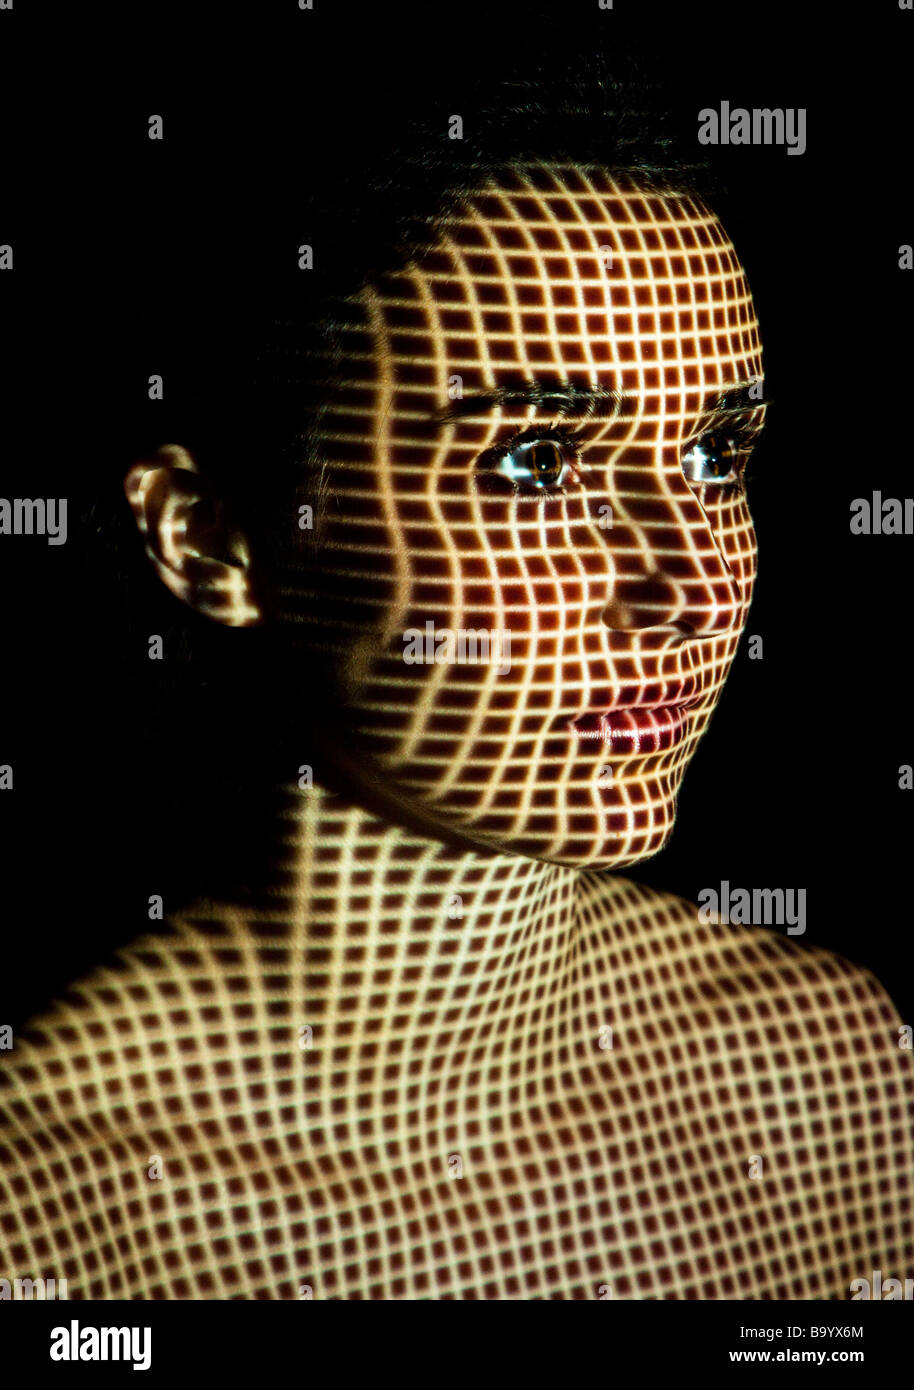 woman with profile patterns projected onto her face - Stock Image